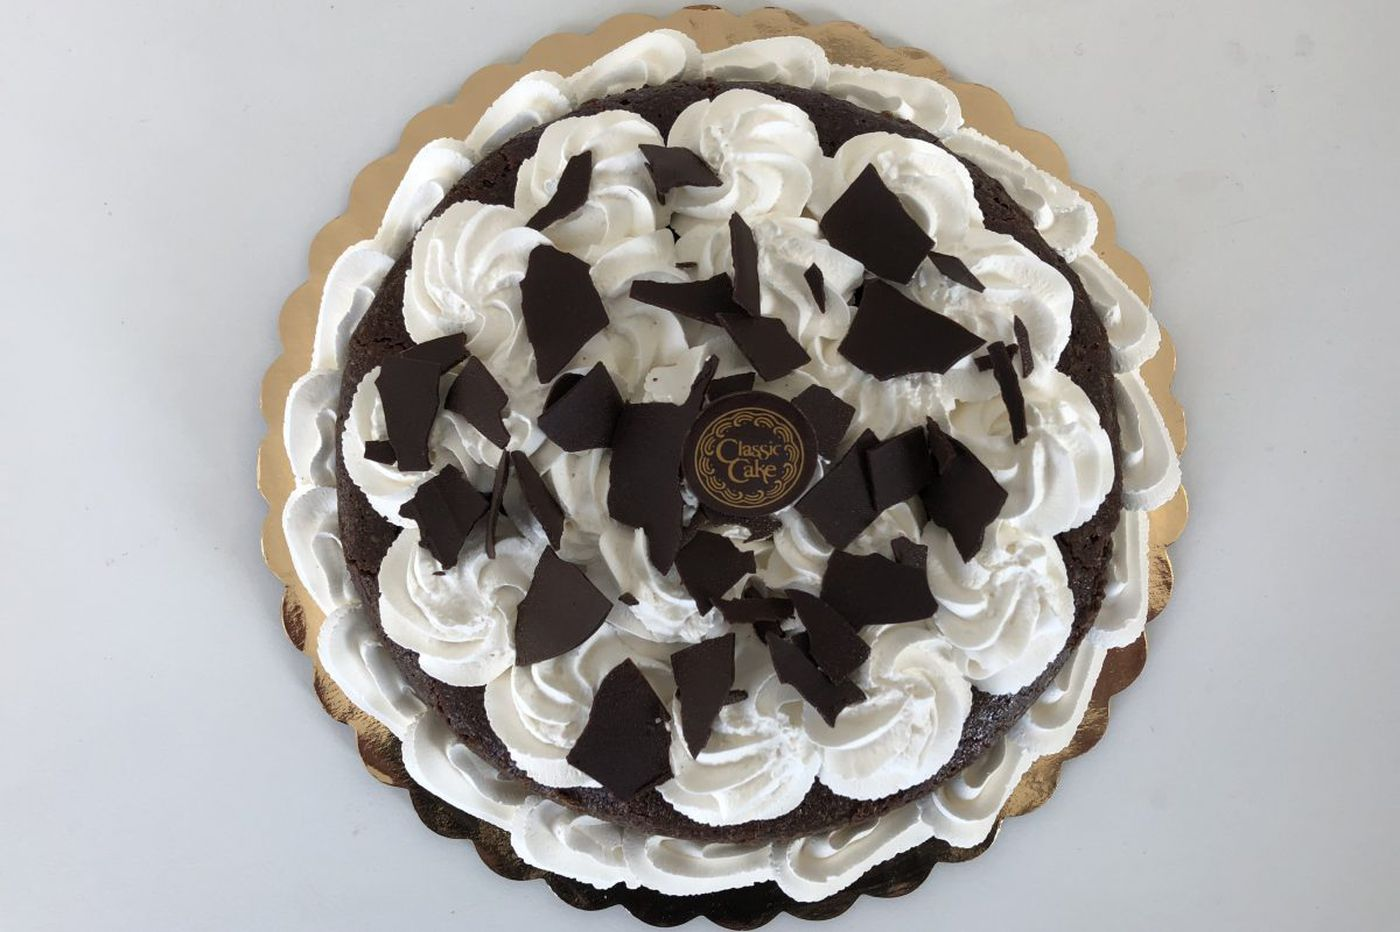 Chocolate cake without flour for Passover